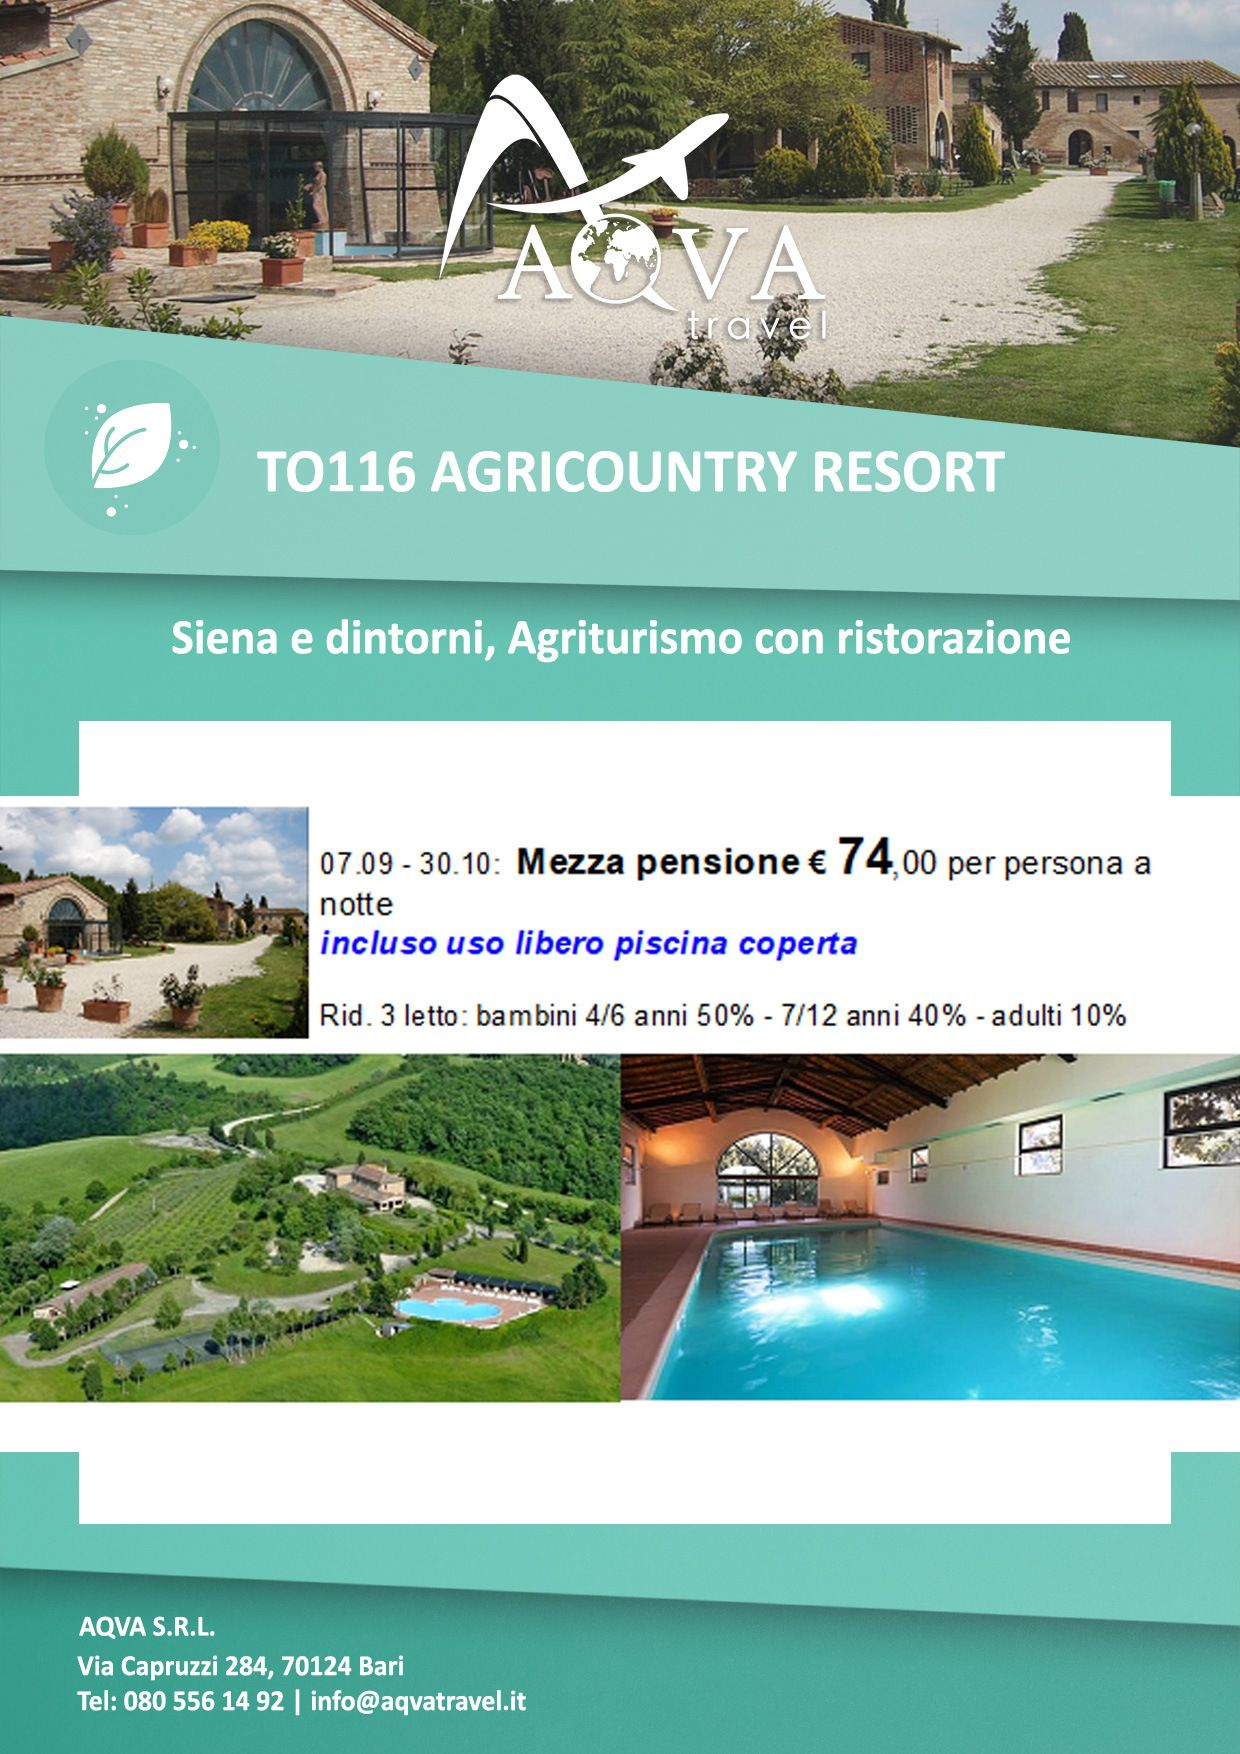 TO116 AGRICOUNTRY RESORT - Siena e dintorni, Agriturismo con ...